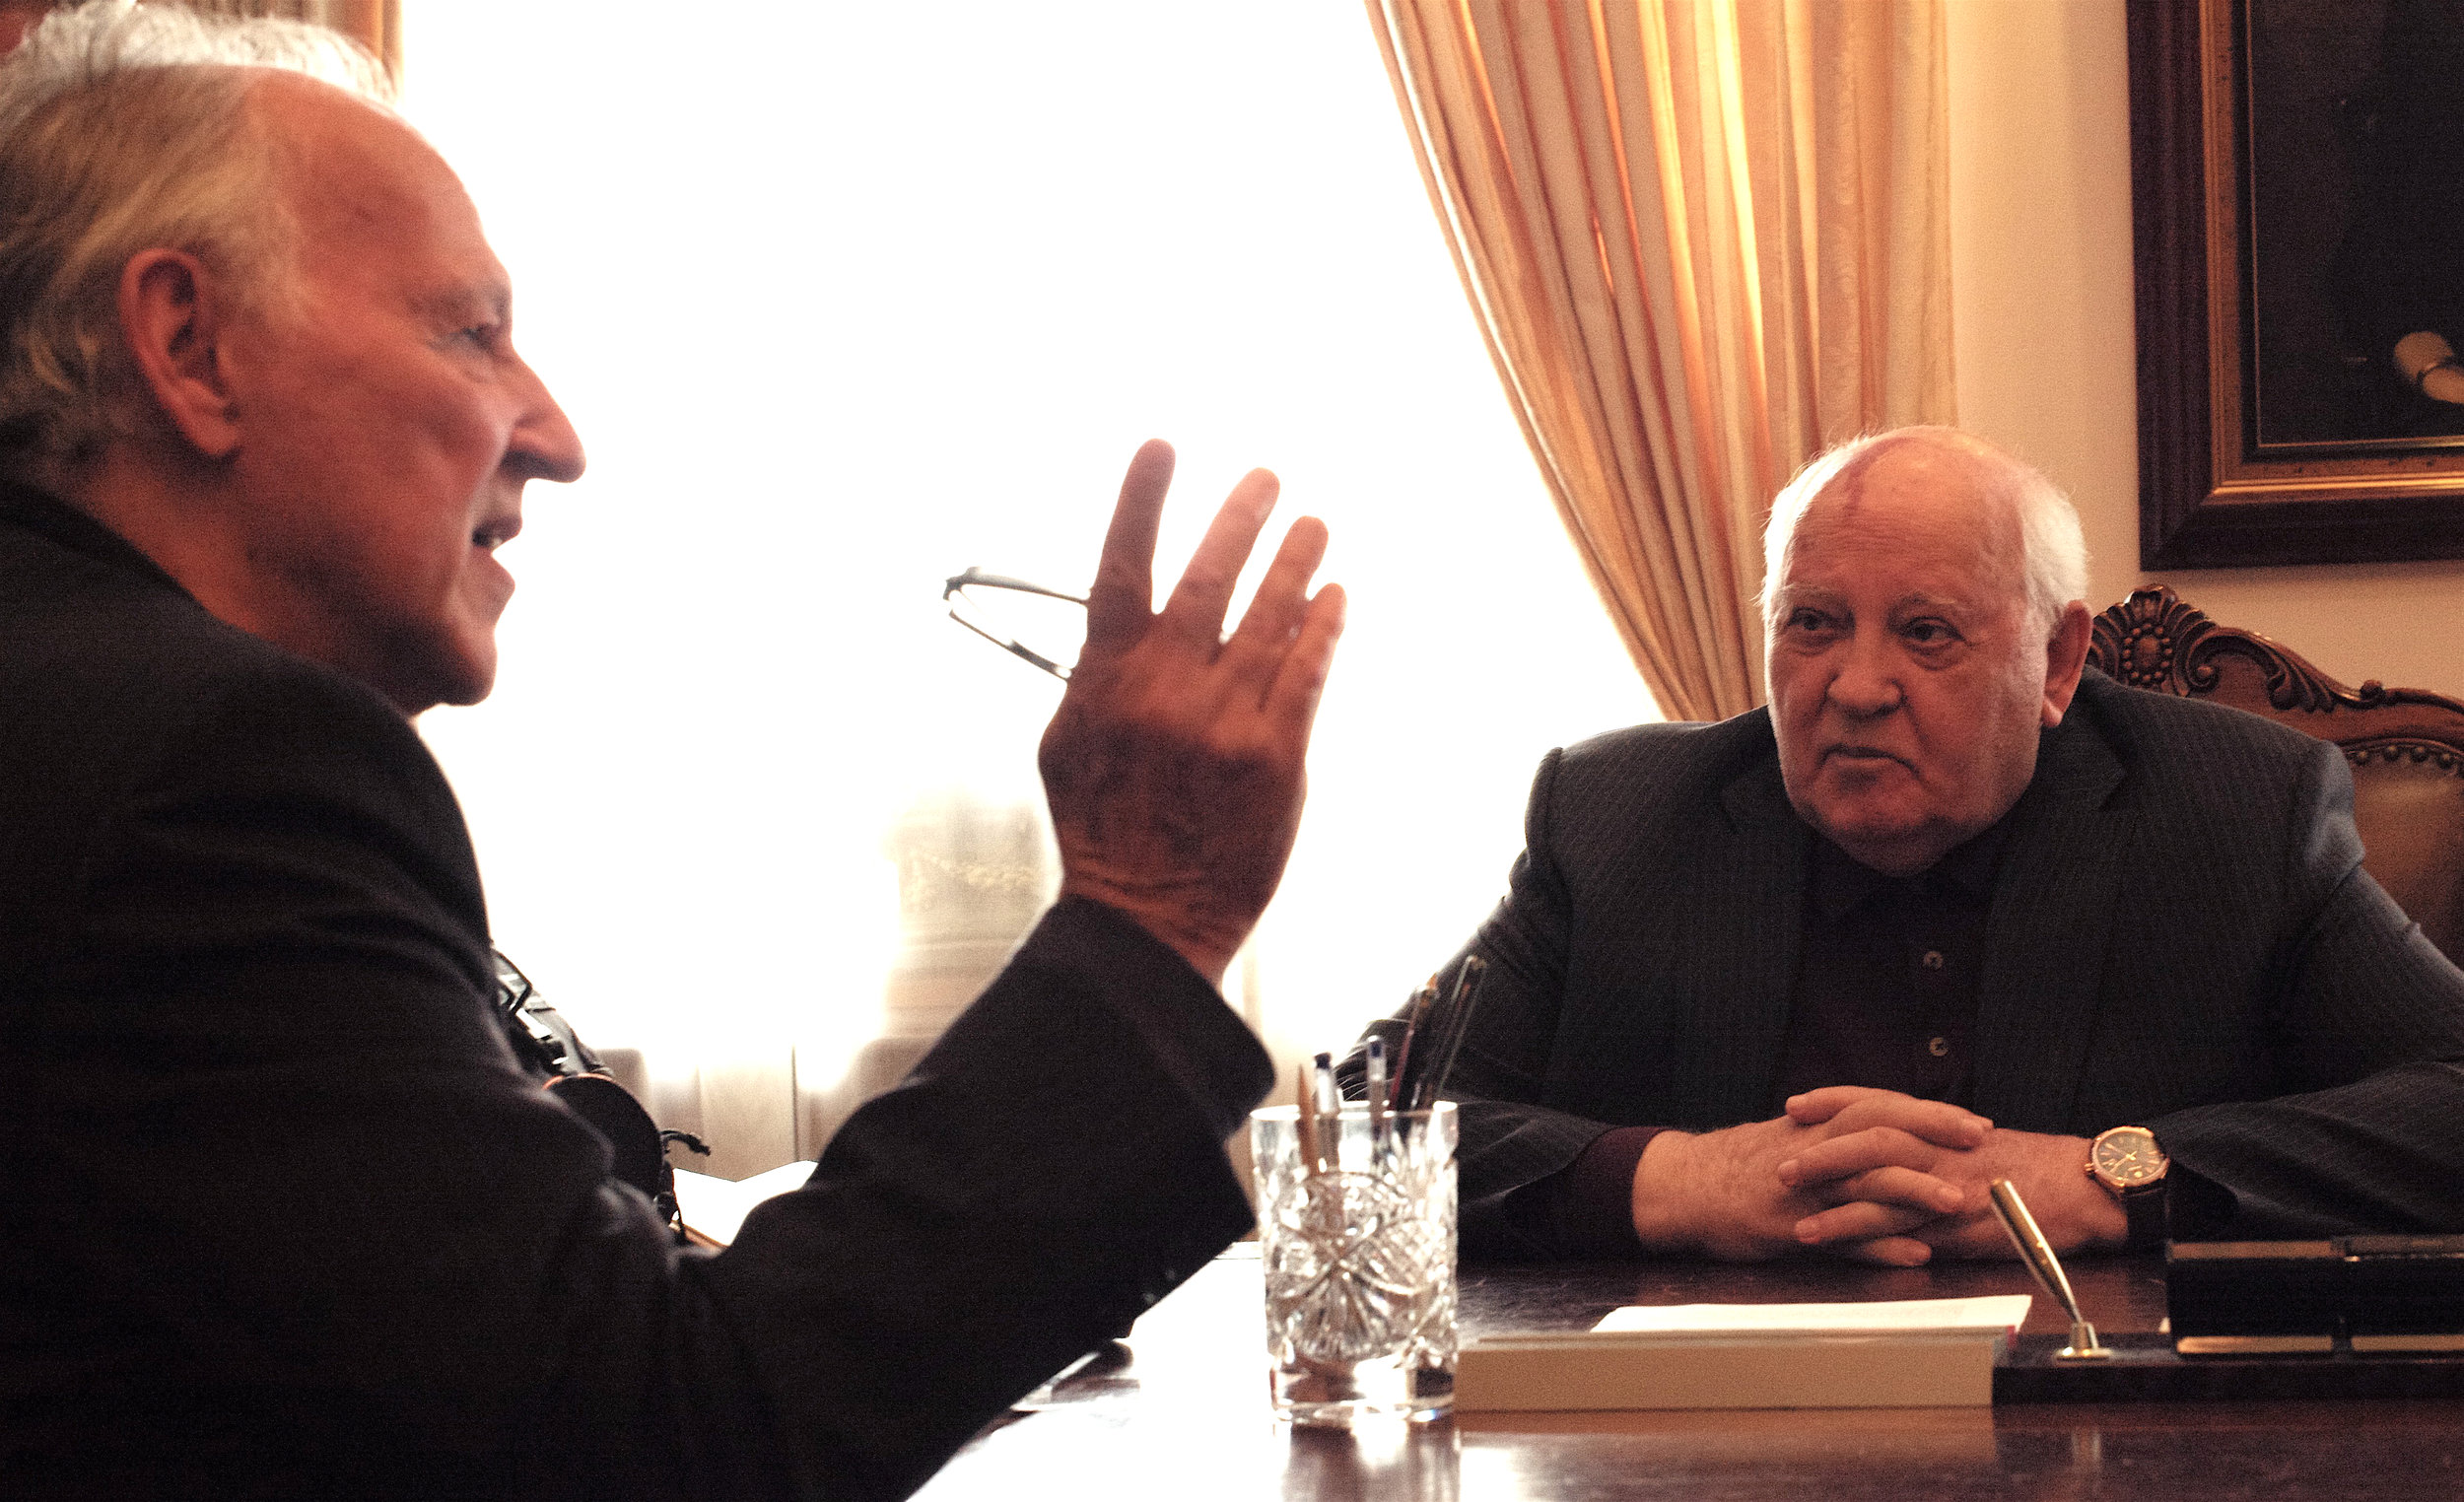 https://www.thenation.com/article/werner-herzog-mikhail-gorbachev-documentary-review/